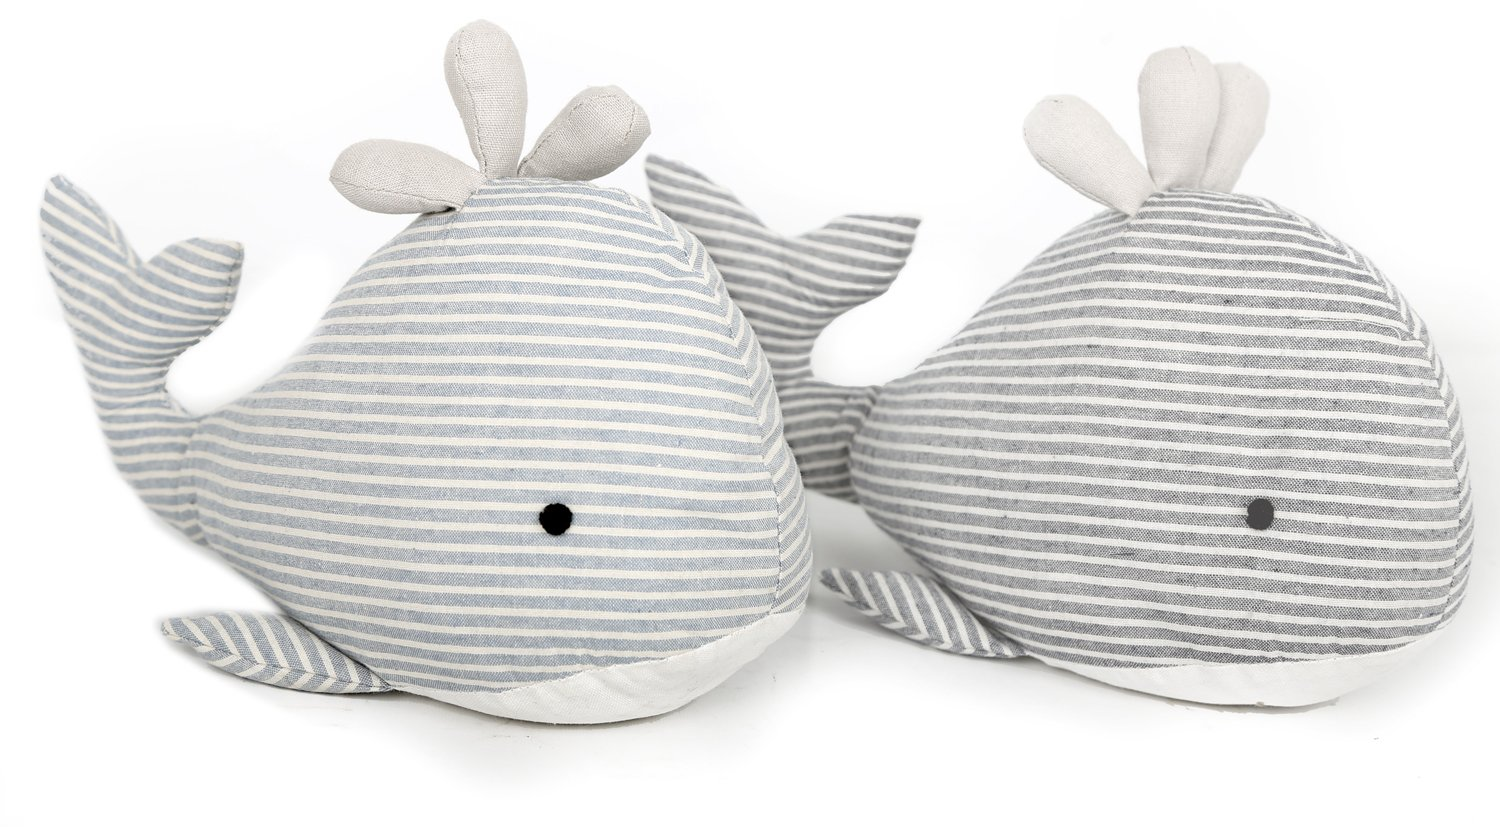 Carousel Home and Gifts Fabric Seashore Whale Doorstop ~ Nautical Animal Door Stop